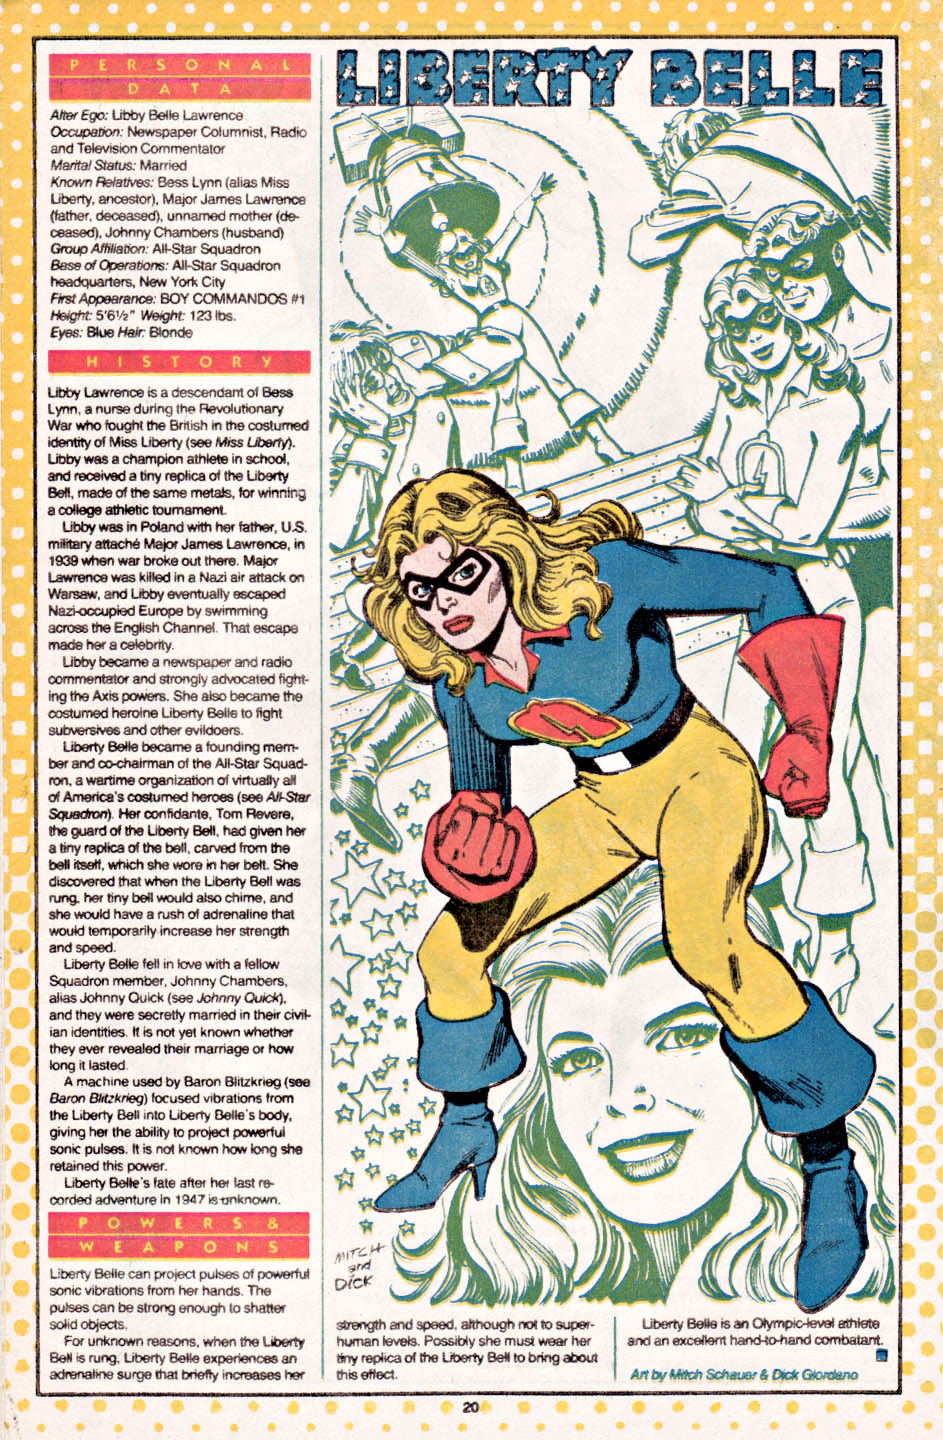 Who's Who Liberty Belle by Mitch Schauer and Dick Giordano